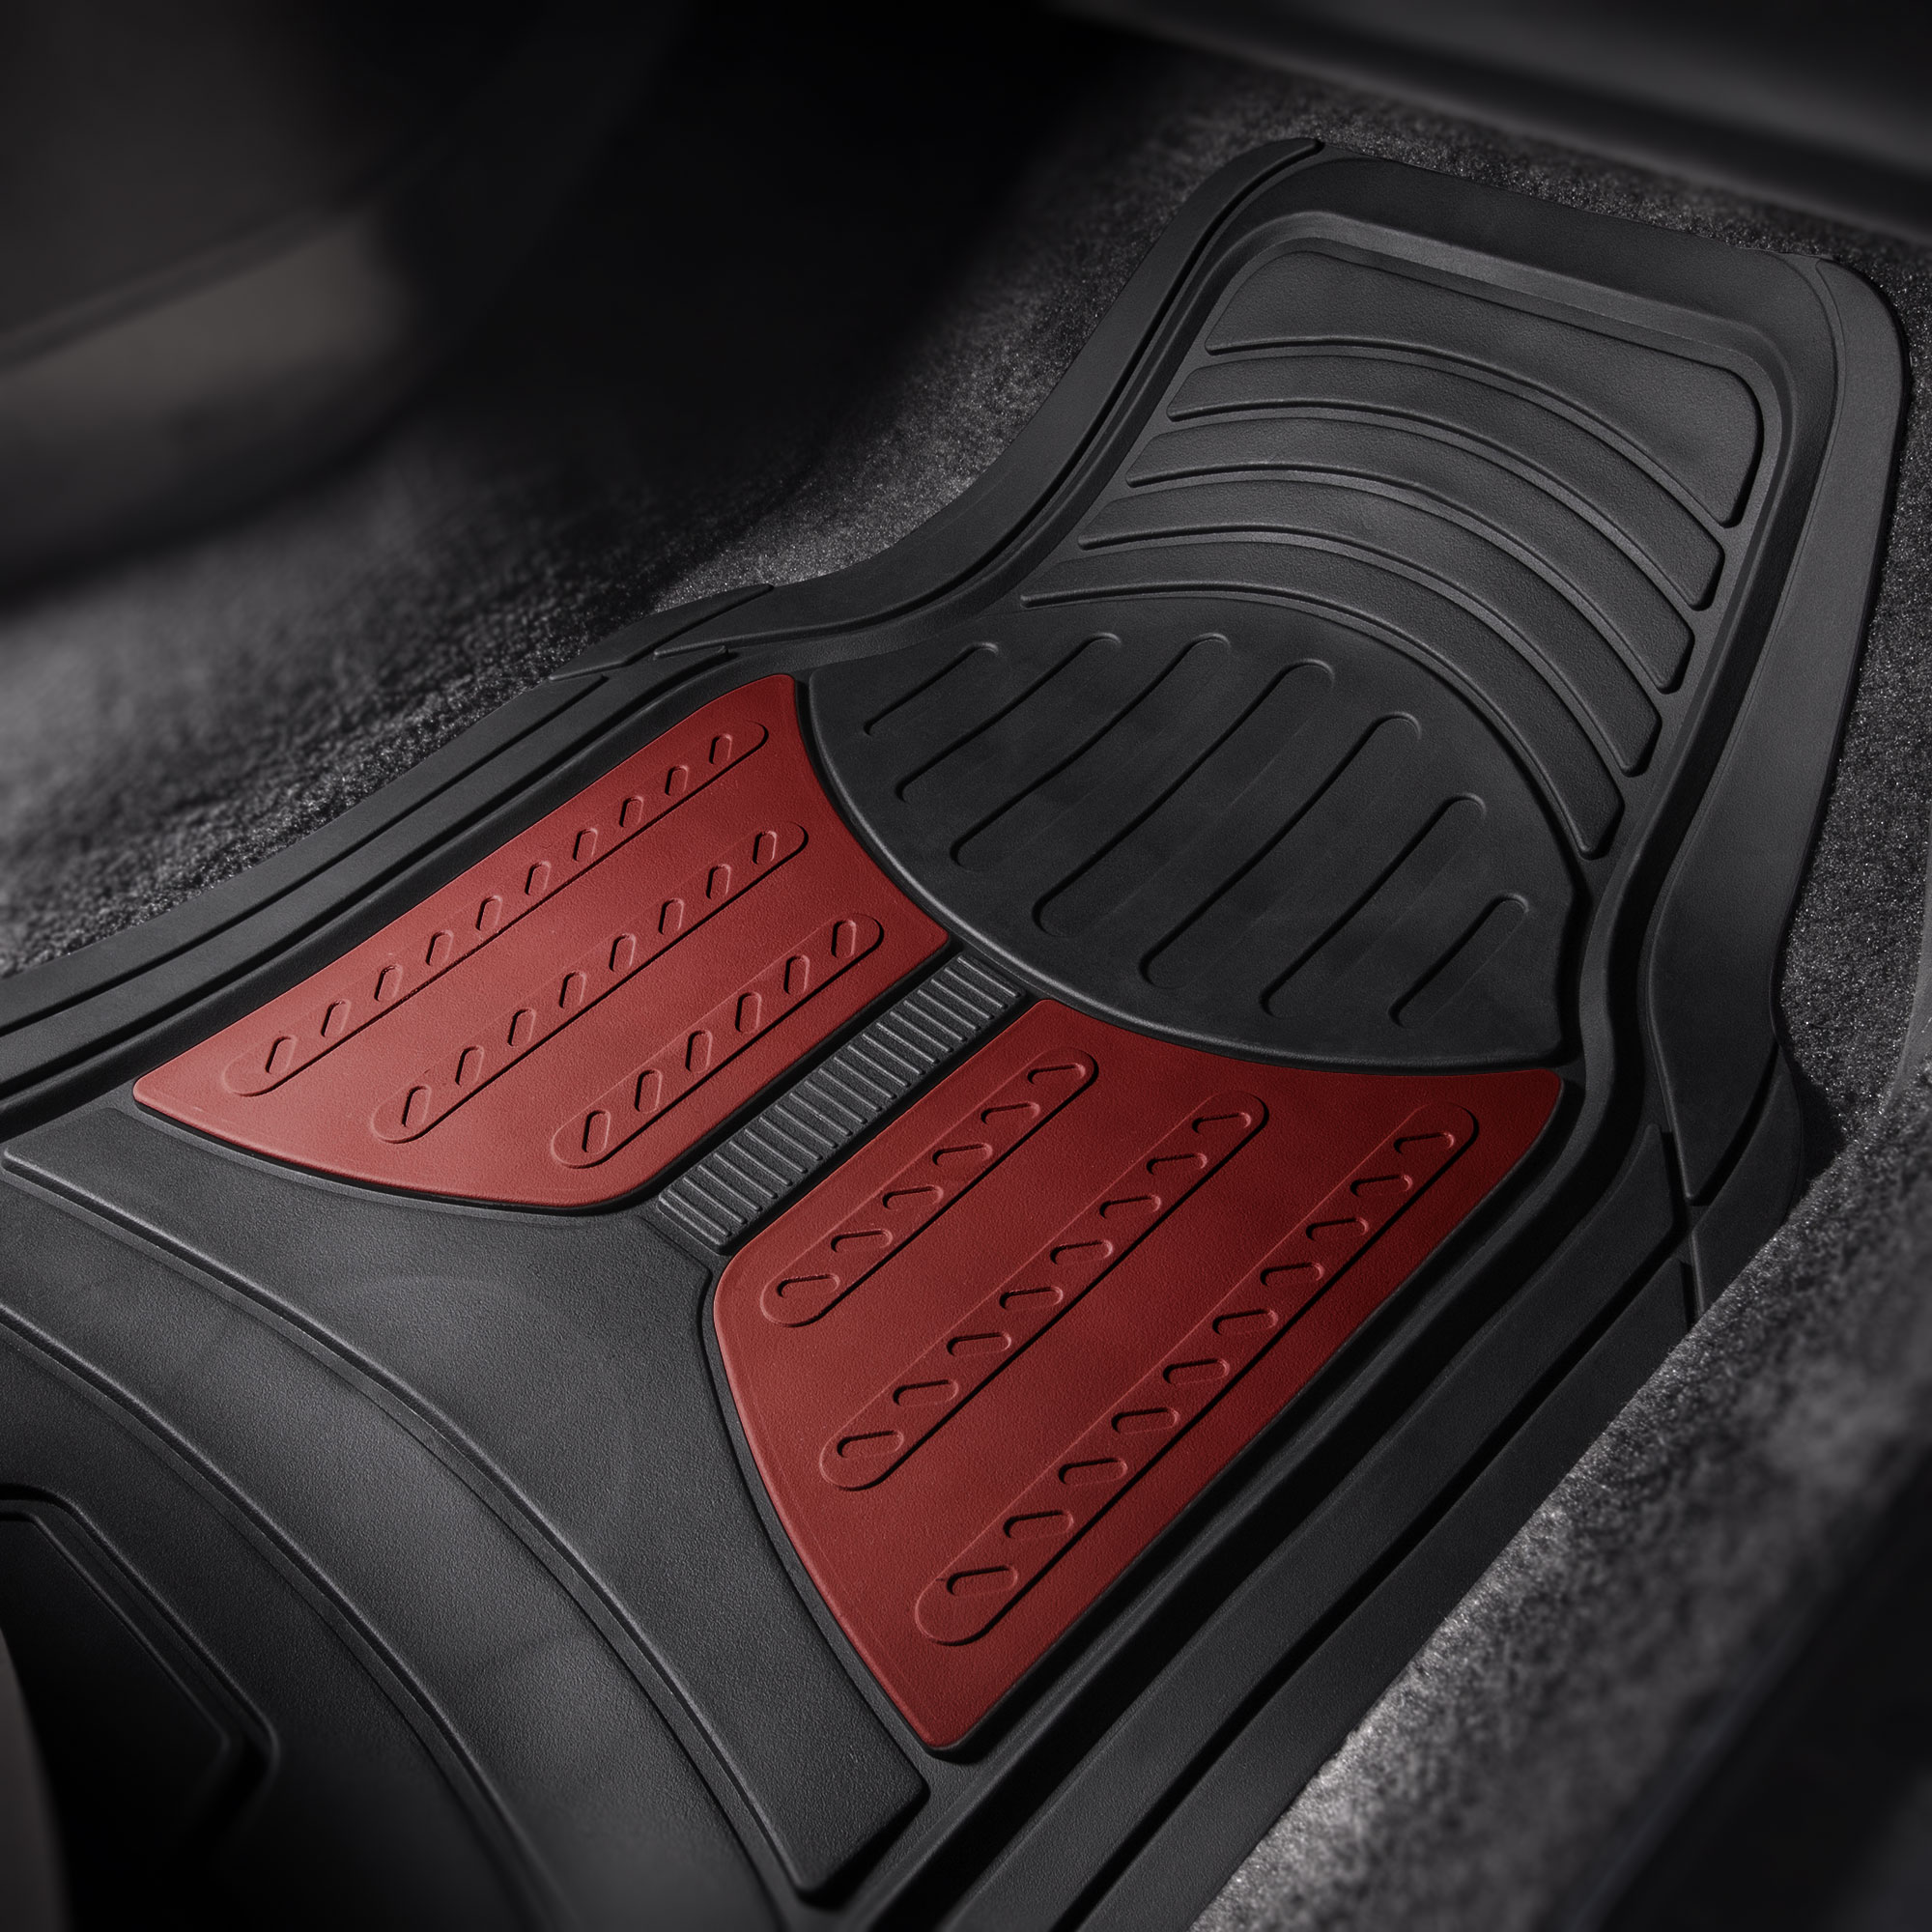 thumbnail 14 - Car Floor Mats for All Weather Rubber 2-Tone Design Heavy Duty - 4 Pc Set